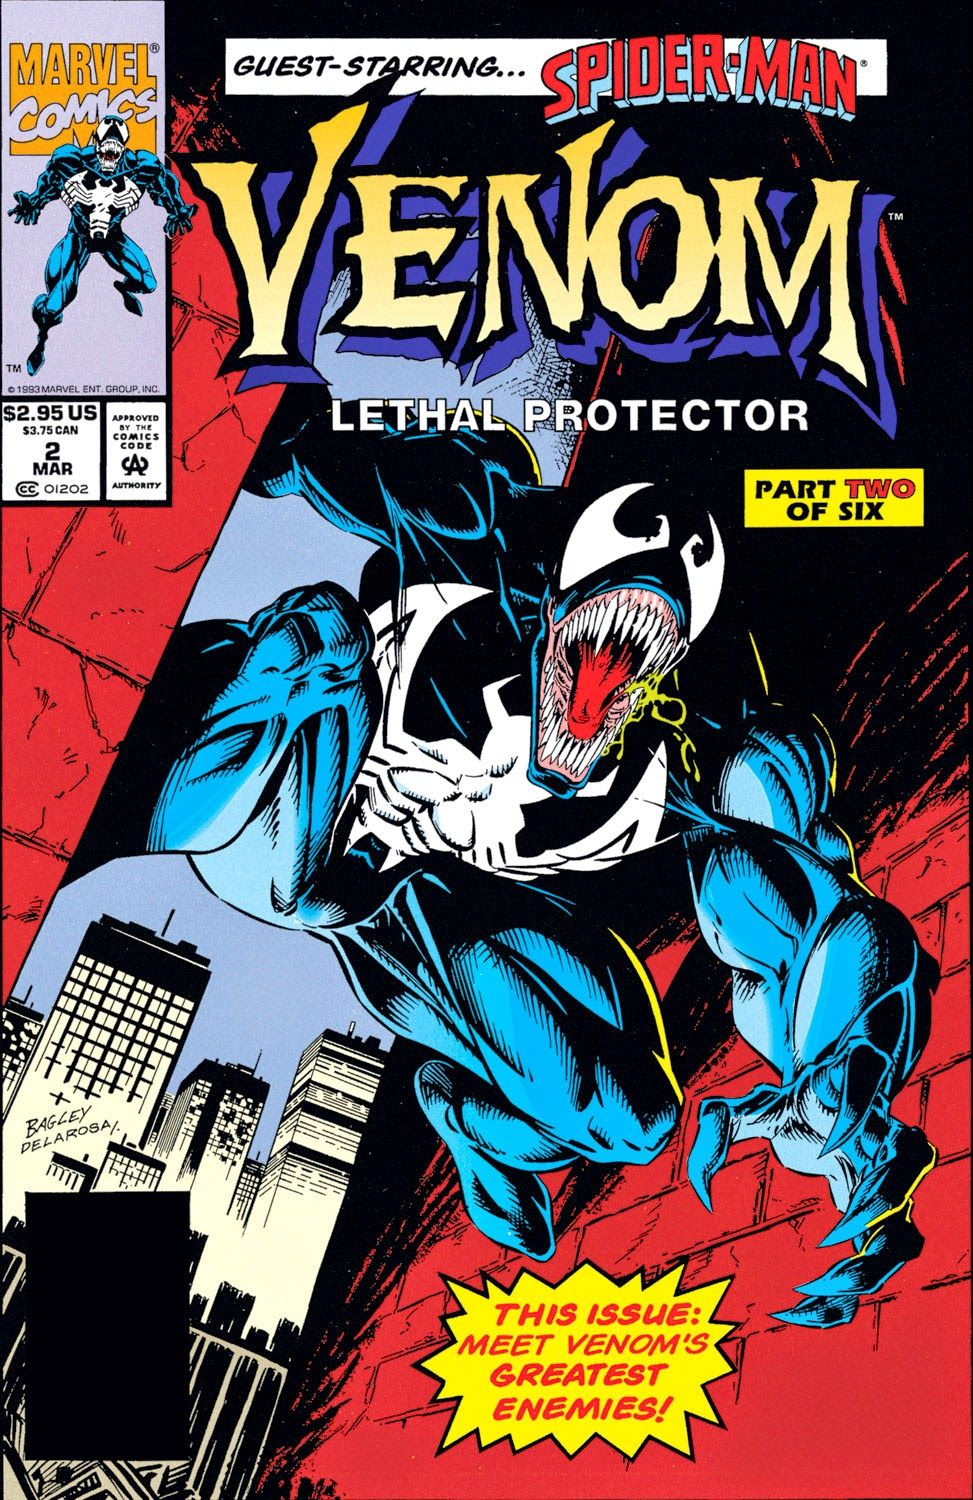 The Venom Movie Will Be Based On These Two Comics Collider